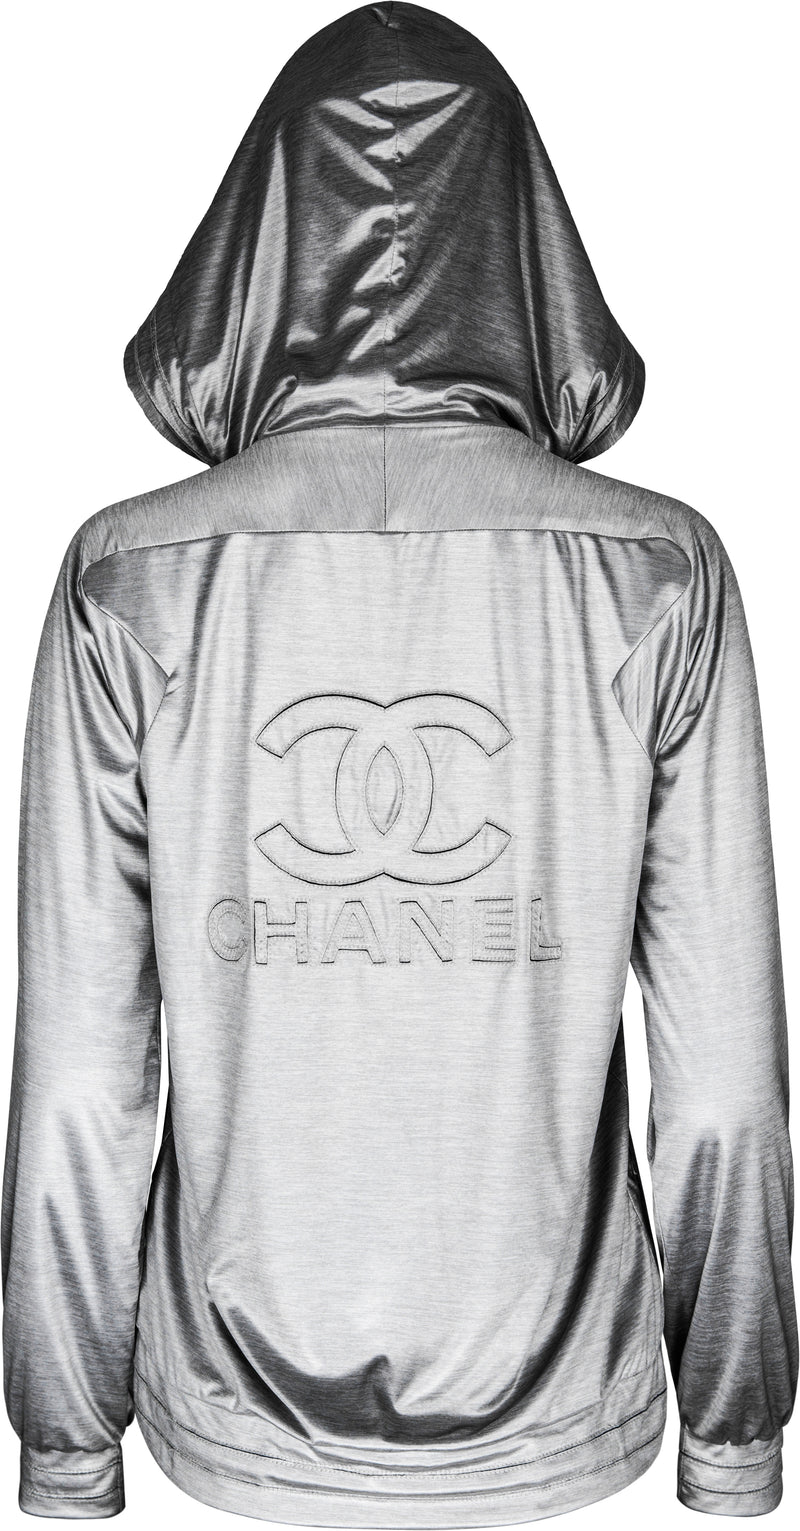 Chanel Fall 2012 Silver Embroidered Logo Track Jacket